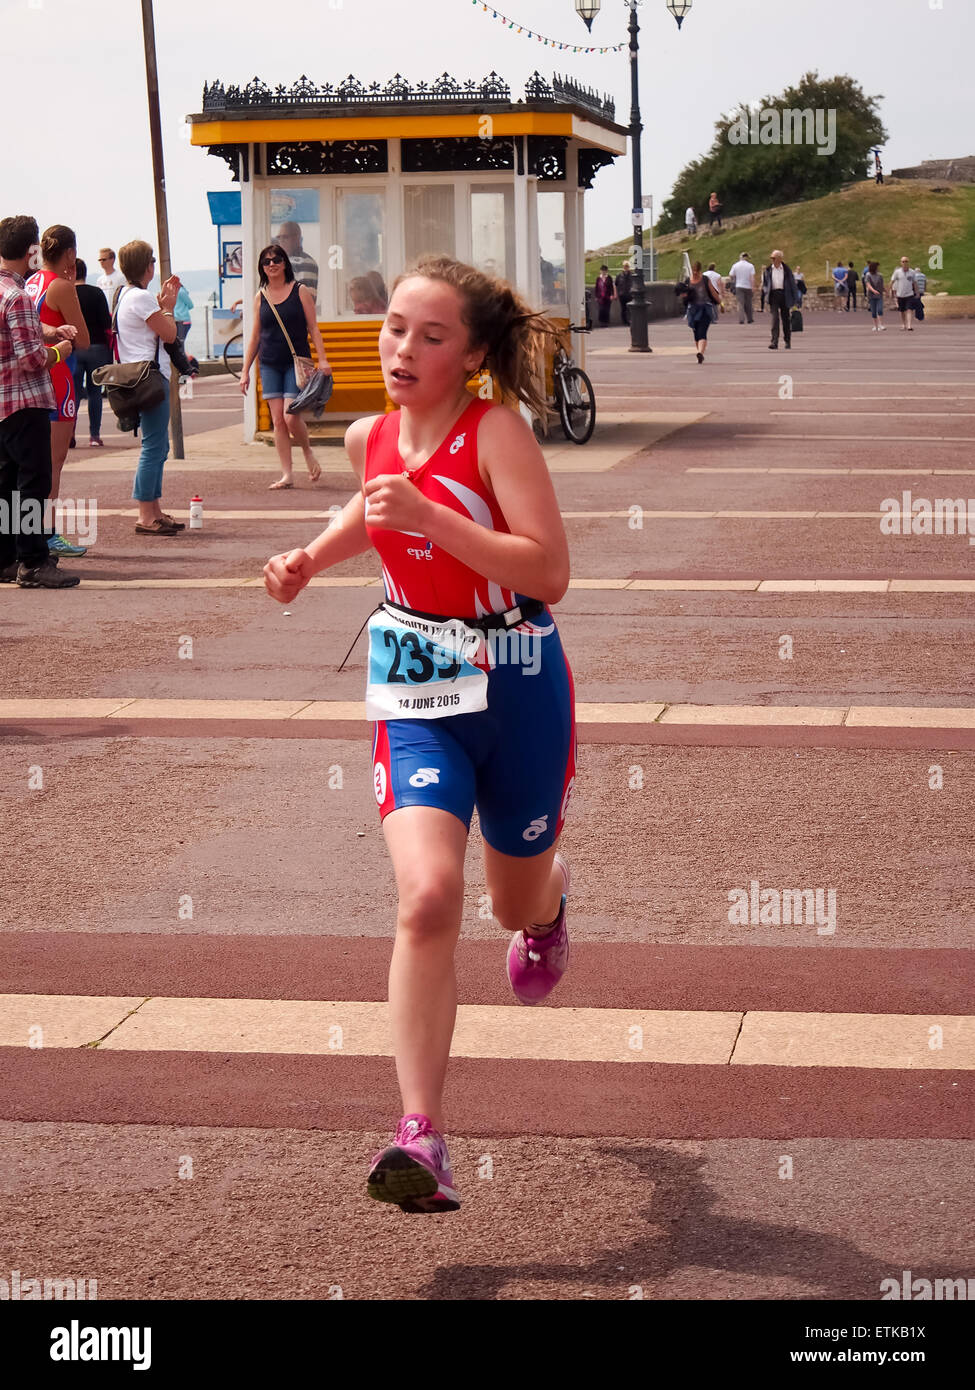 Portsmouth, UK. 14th June, 2015. A young athlete taking part in the the under 16 triathlon approaches the finish - Stock Image